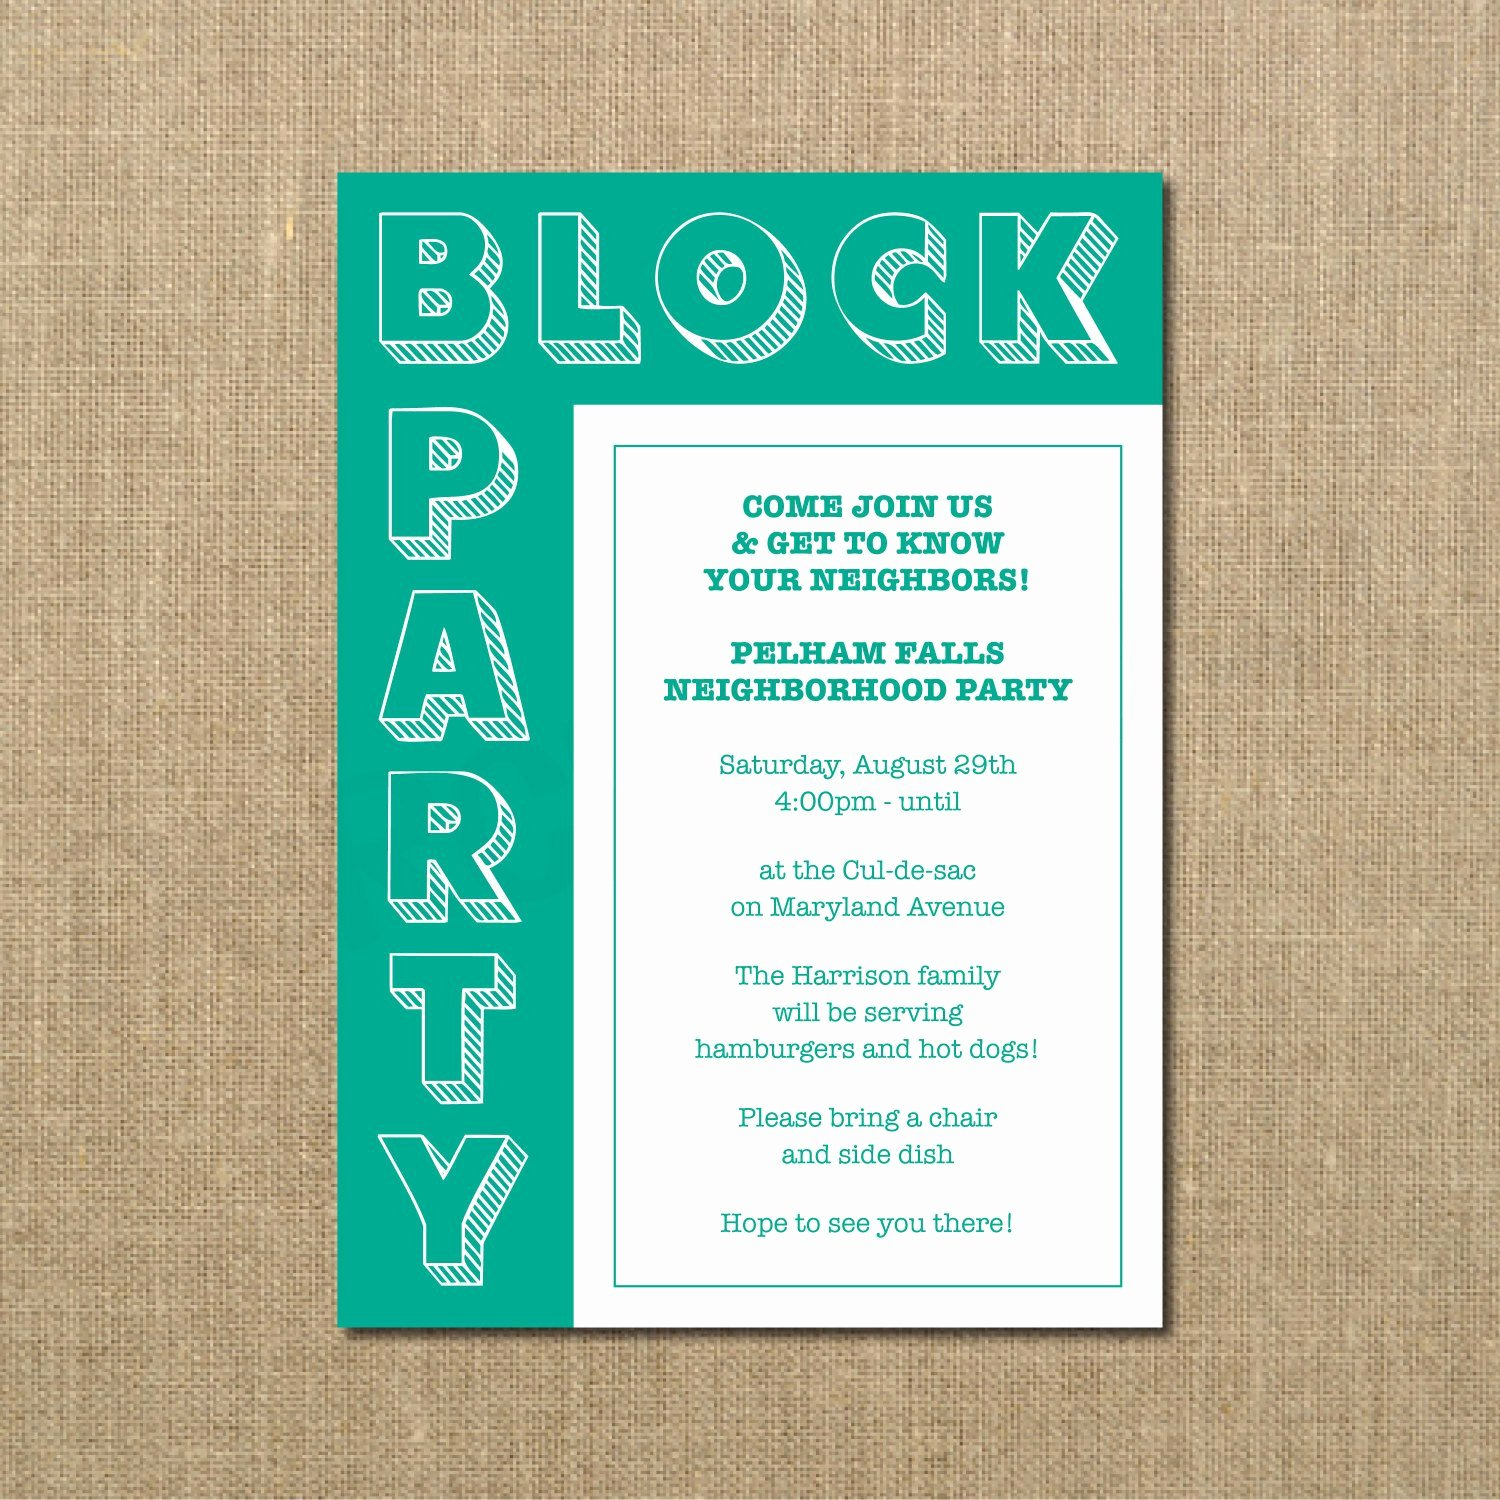 Block Party Invitation Template Awesome Neighborhood Block Party Cookout Invitation Grilling Out